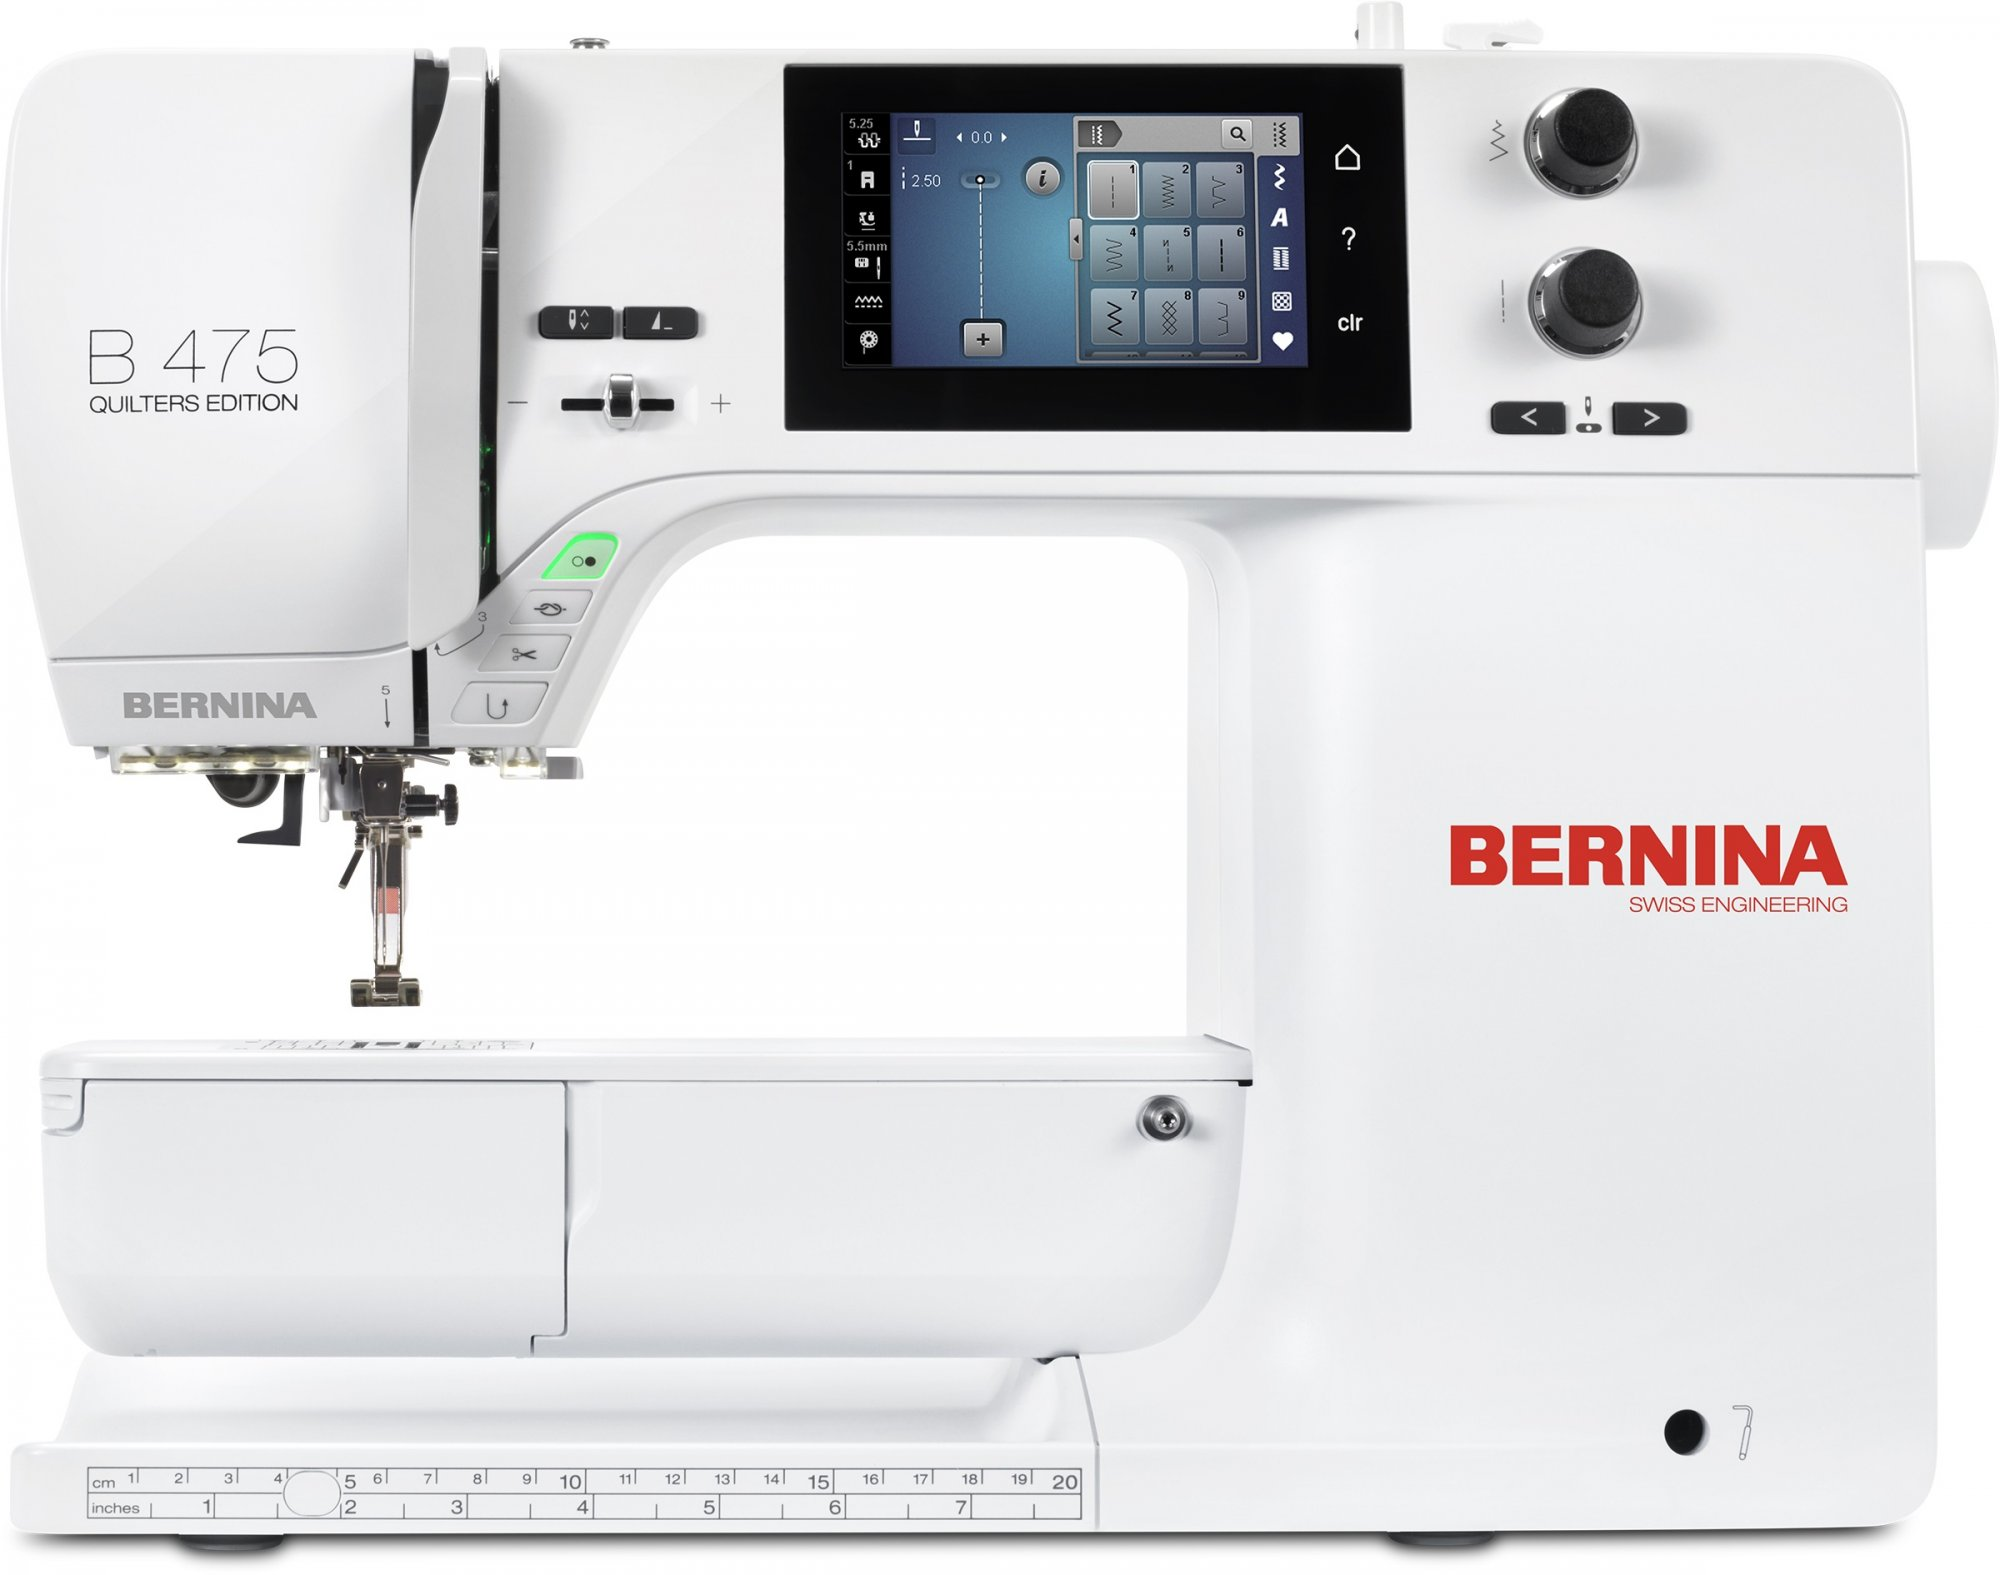 Bernina 475 Sewing Machine